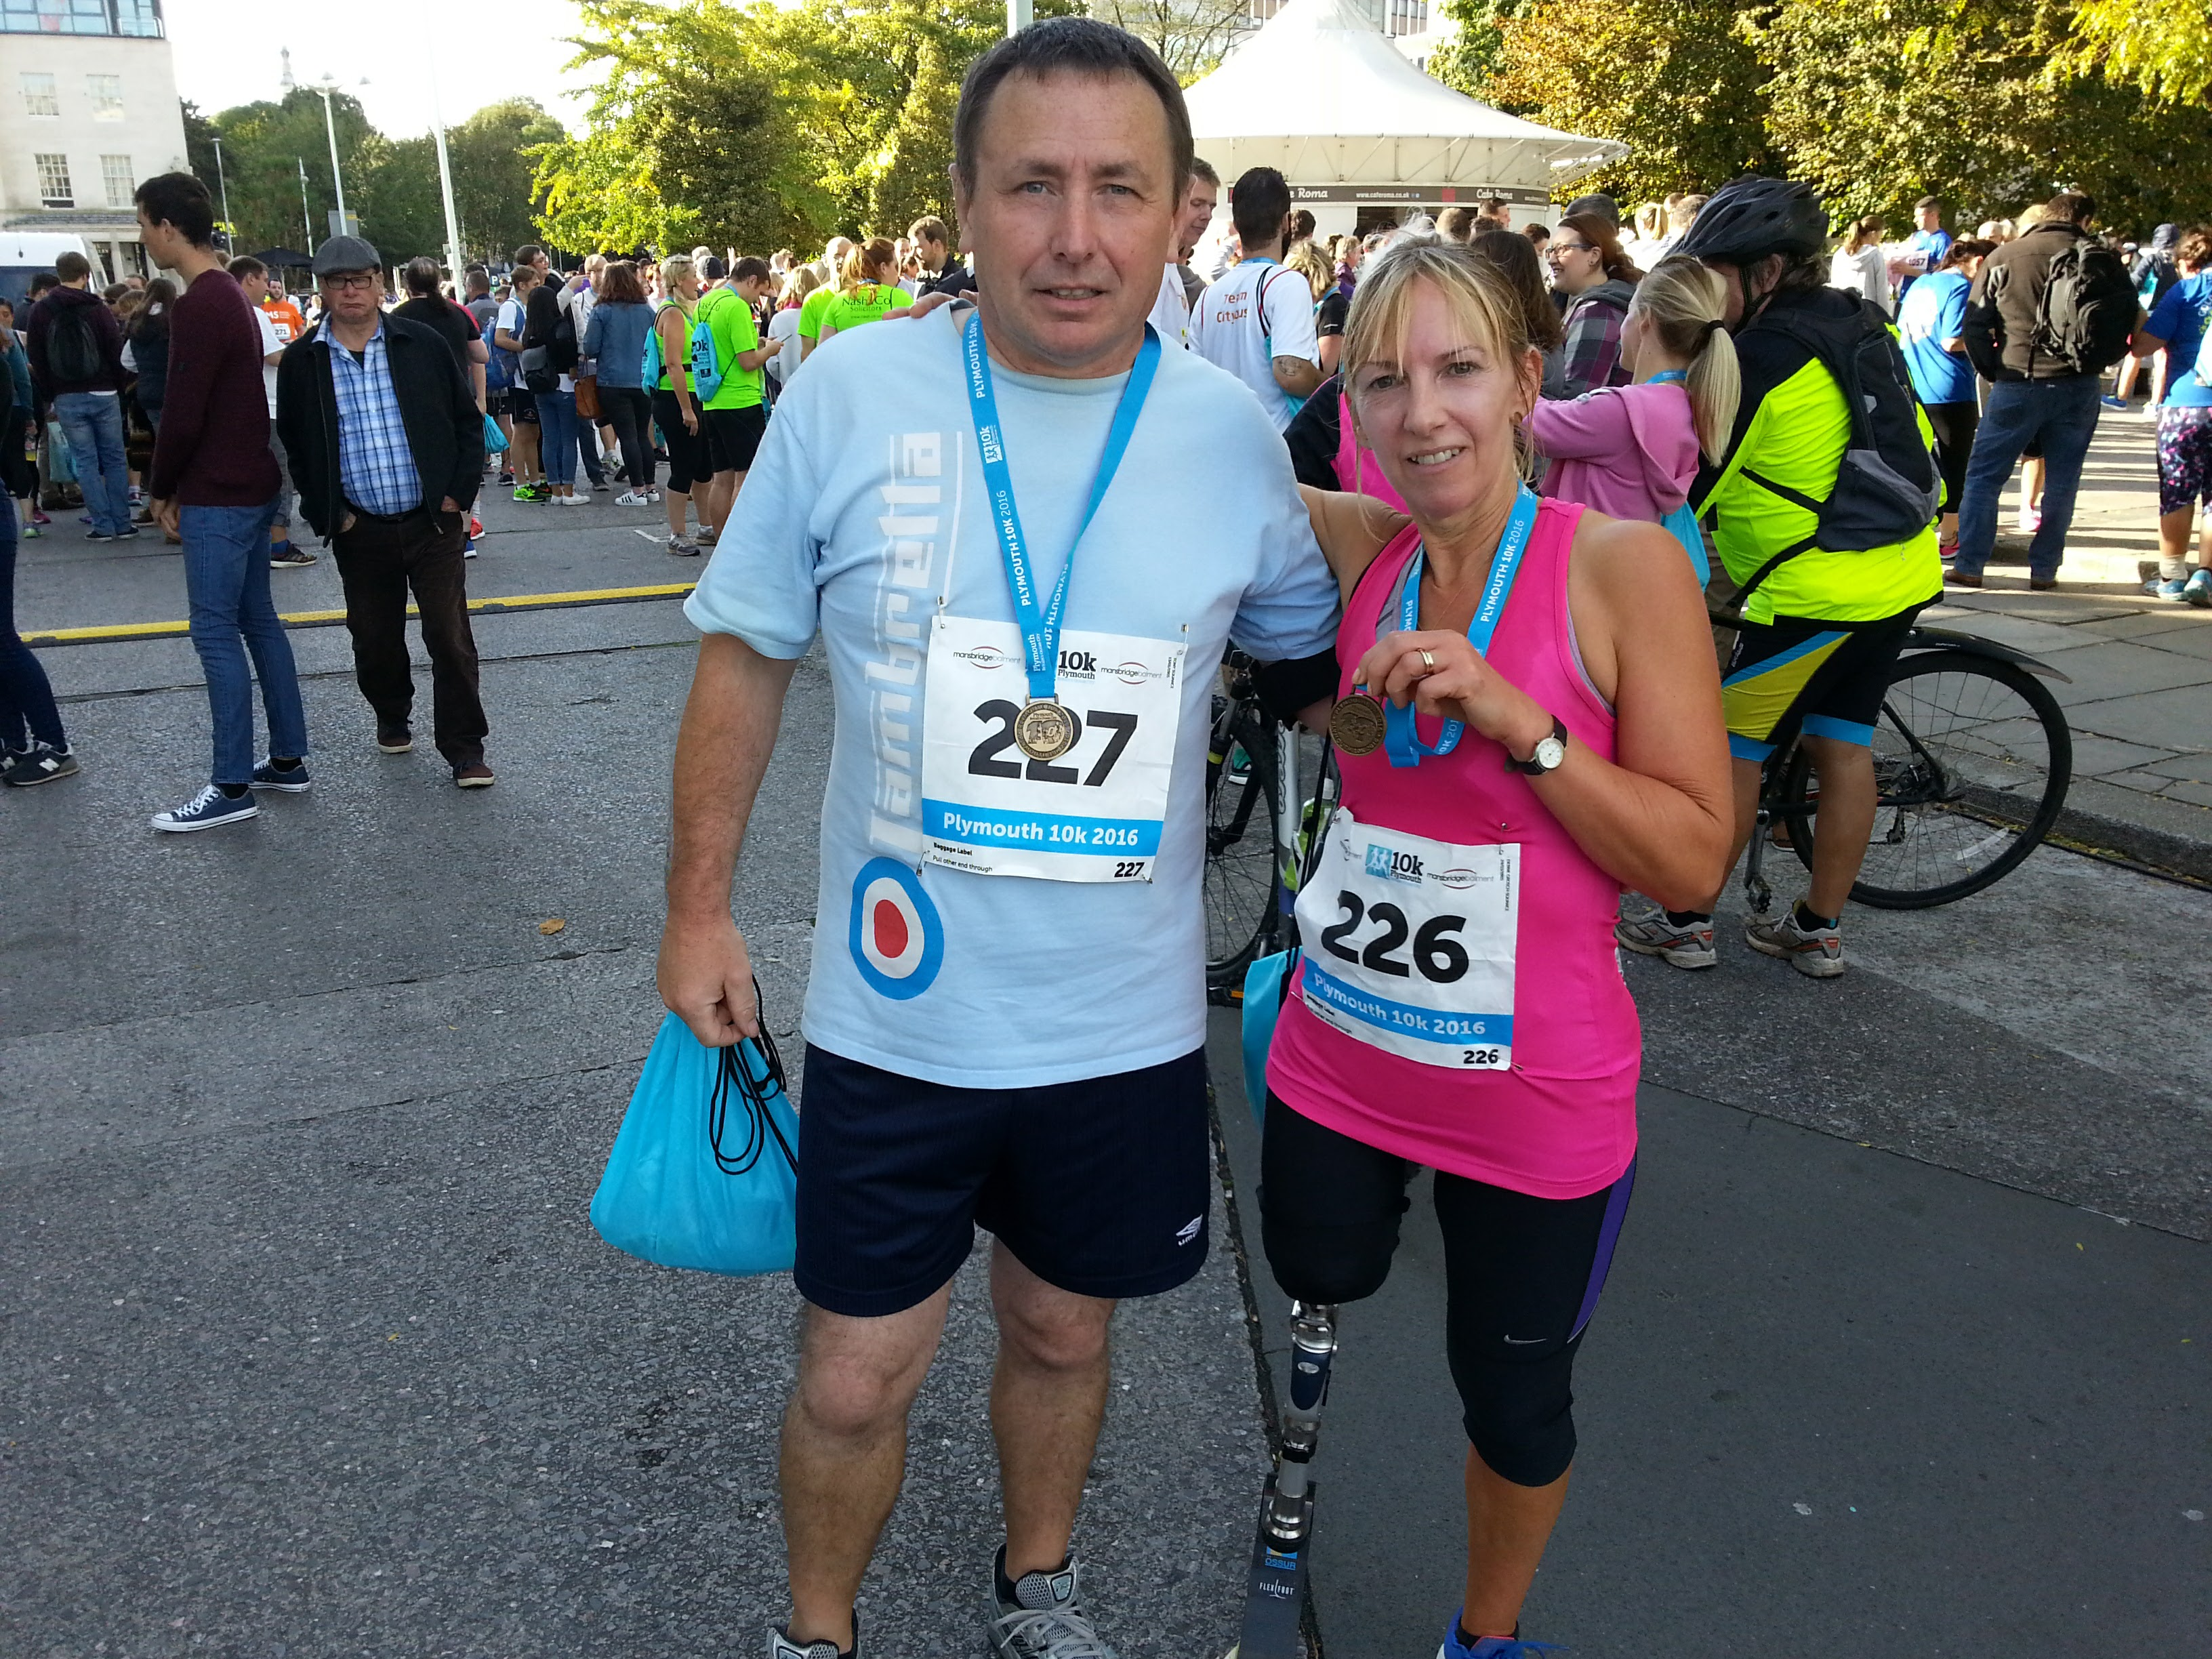 Debbie and her husband at the 2016 Plymouth 10k